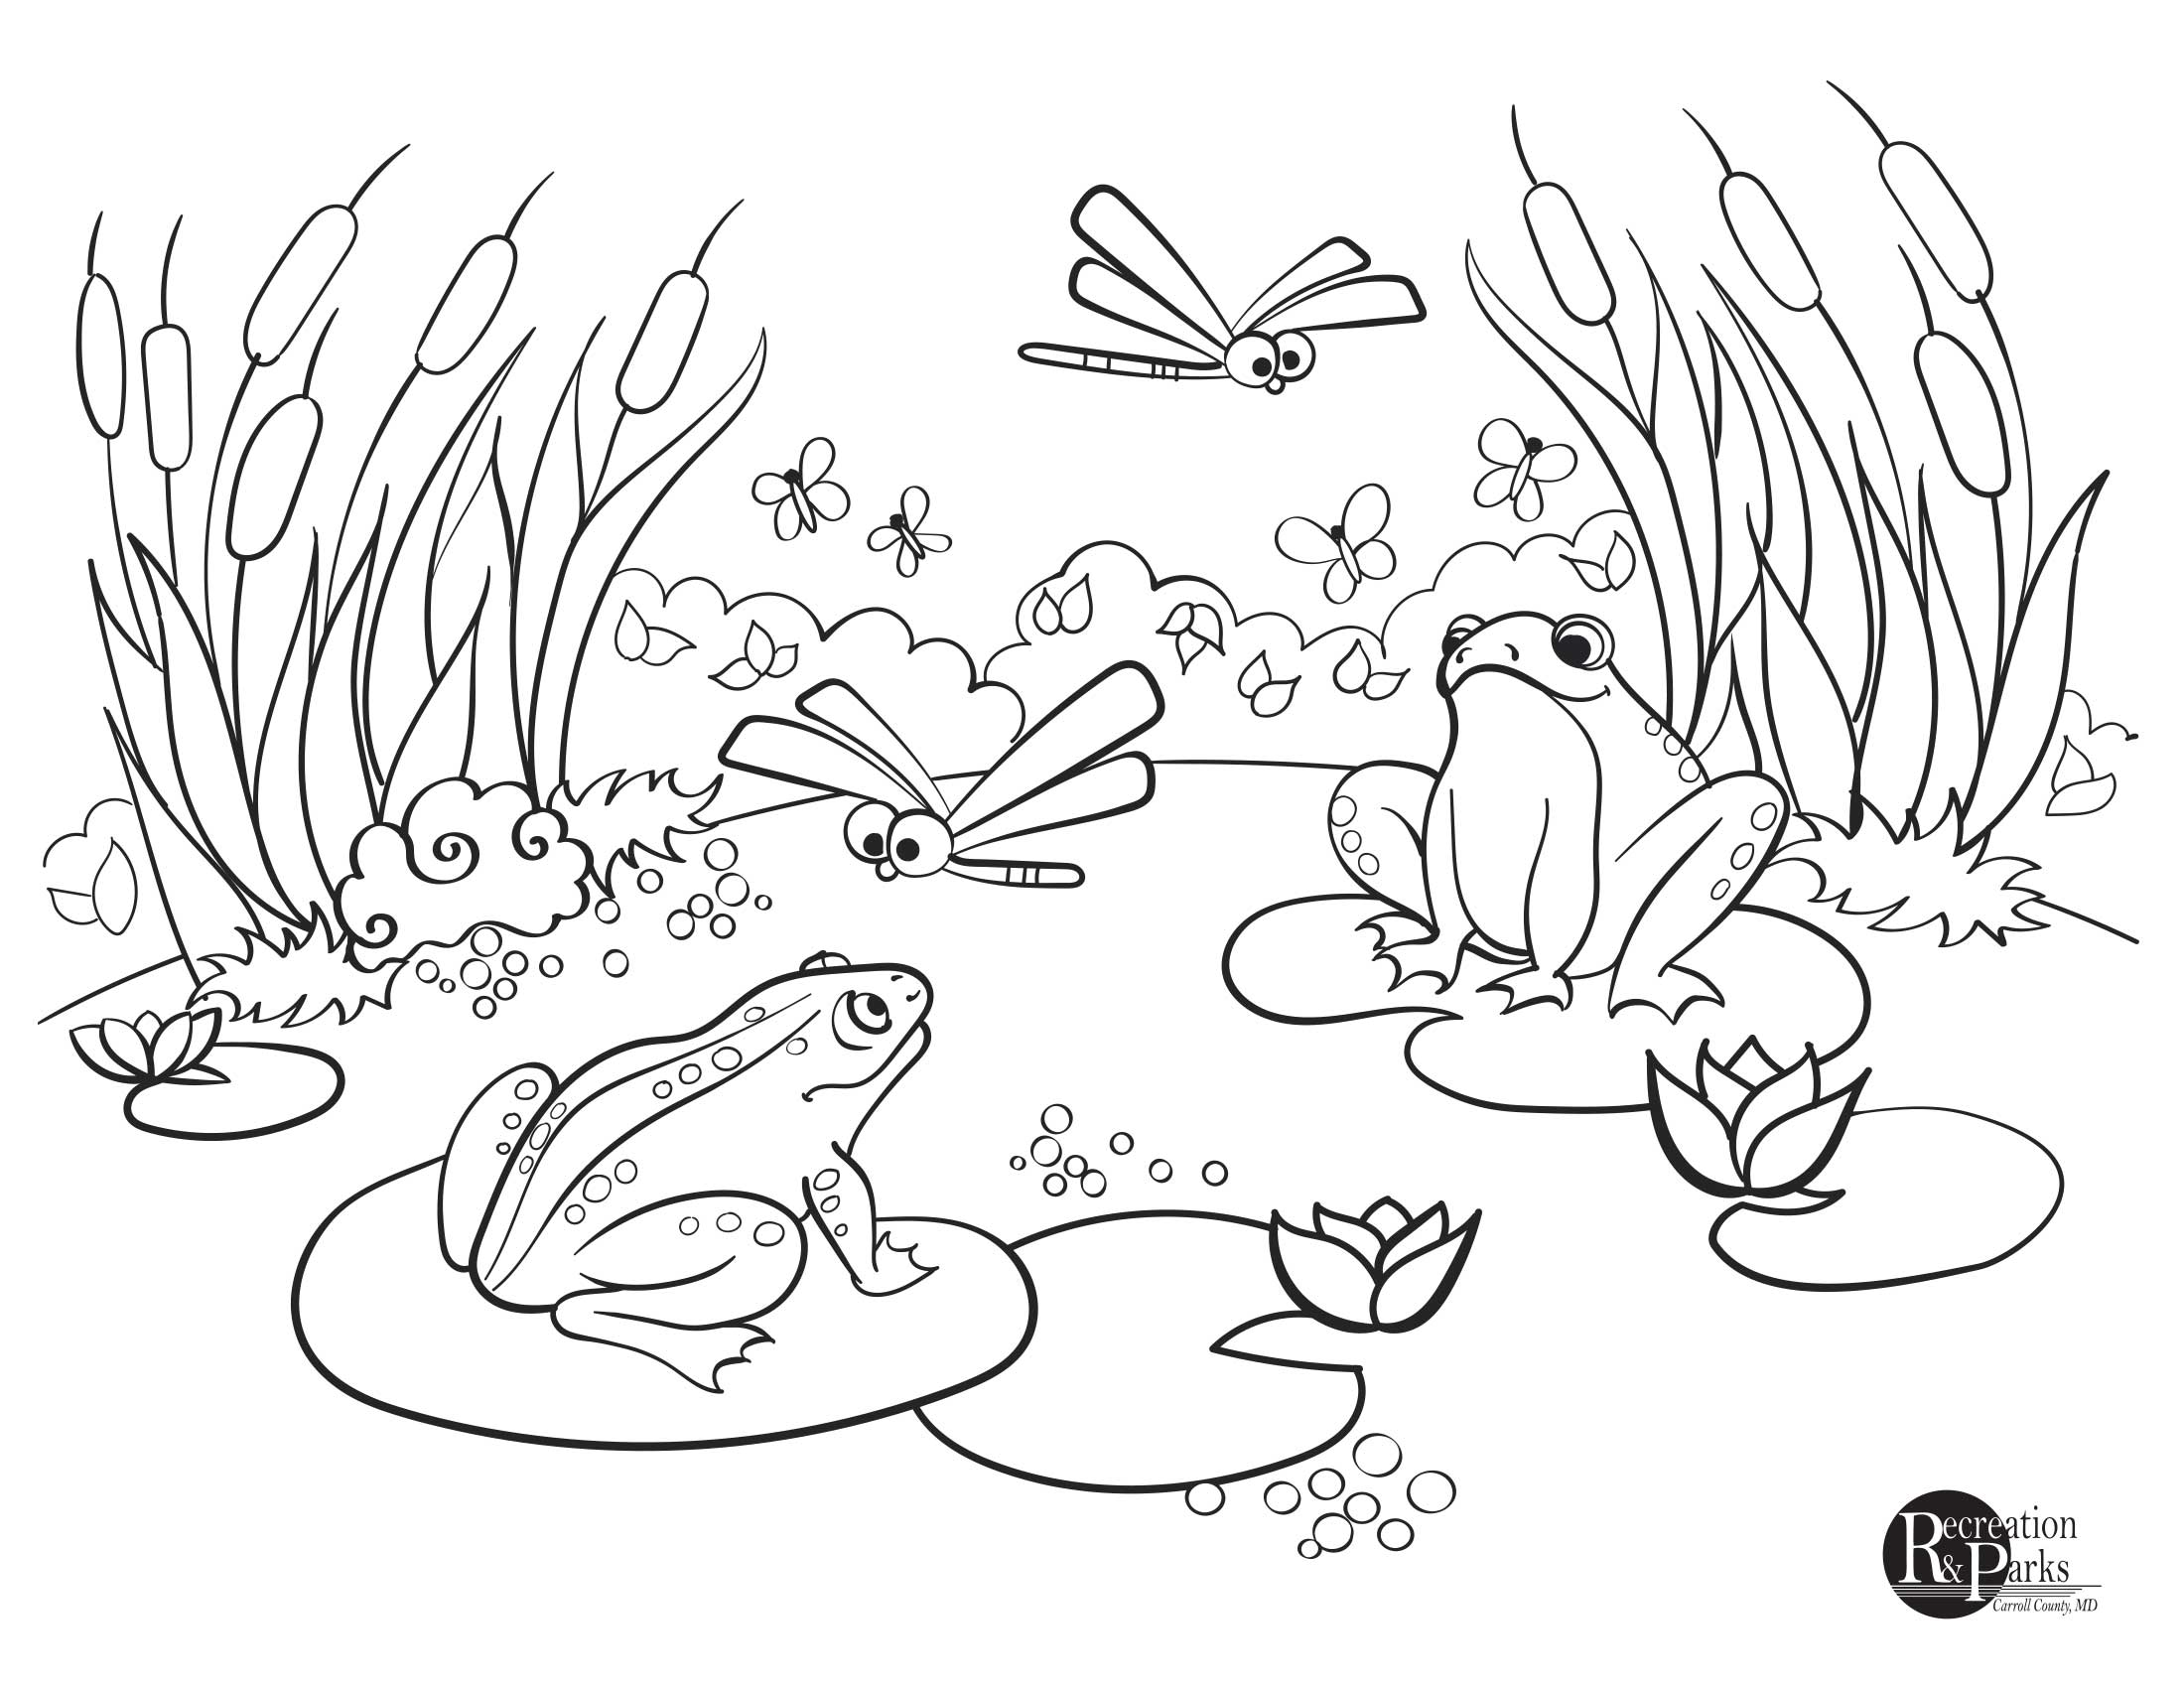 pond coloring pages pond coloring pages at getdrawings free download pages pond coloring